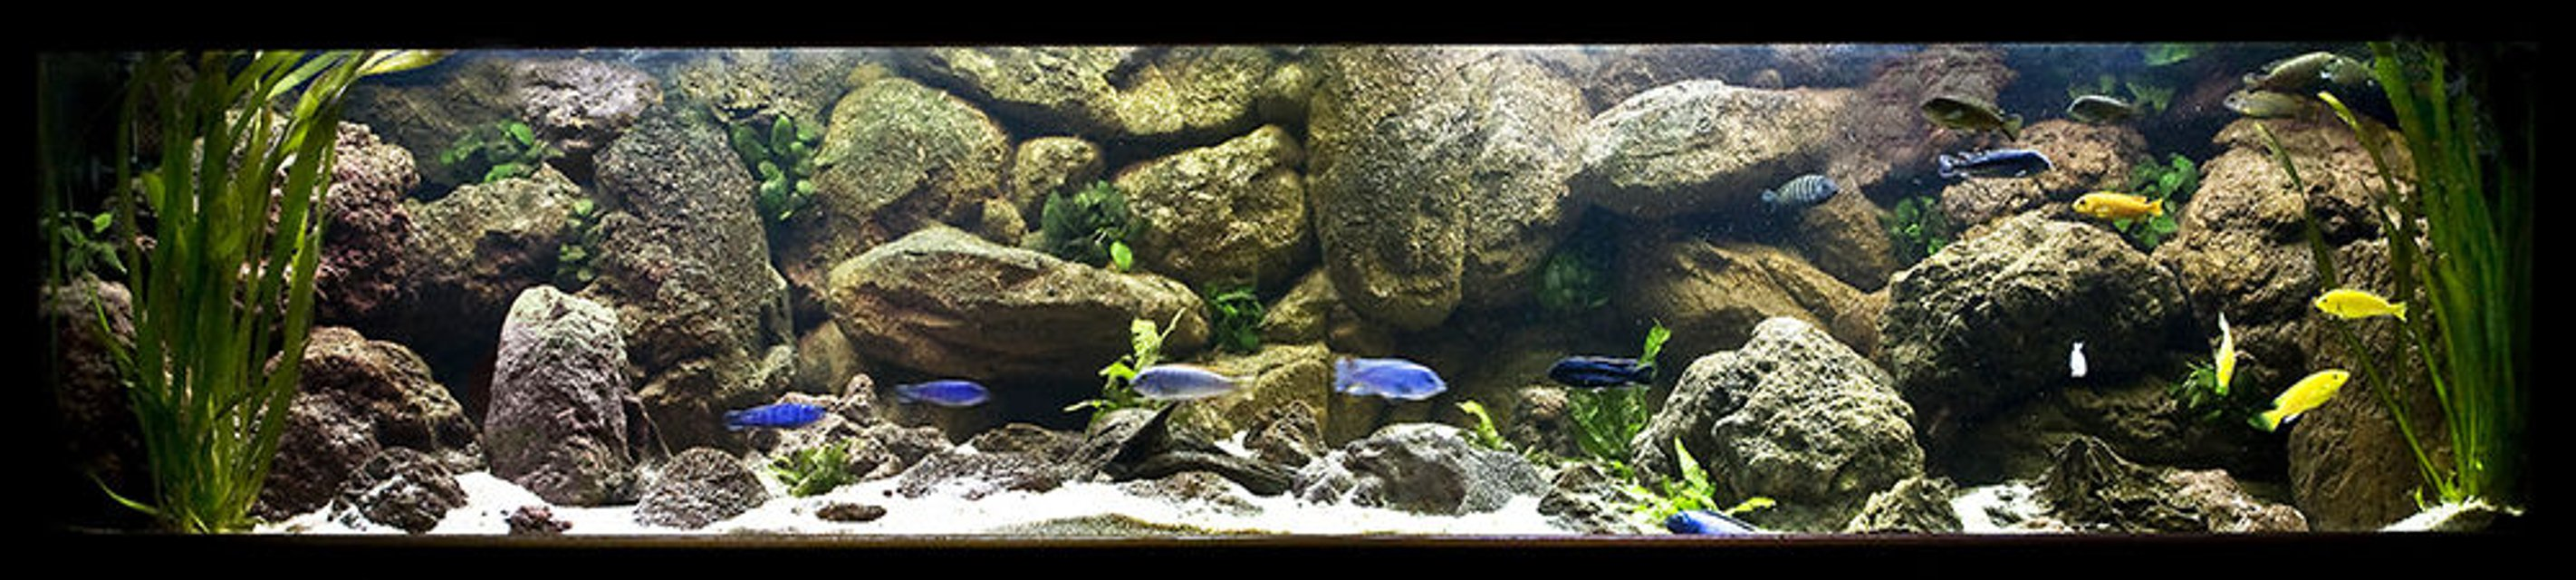 Rated #2: 160 Gallons Freshwater Fish Tank - My Mbuna tank